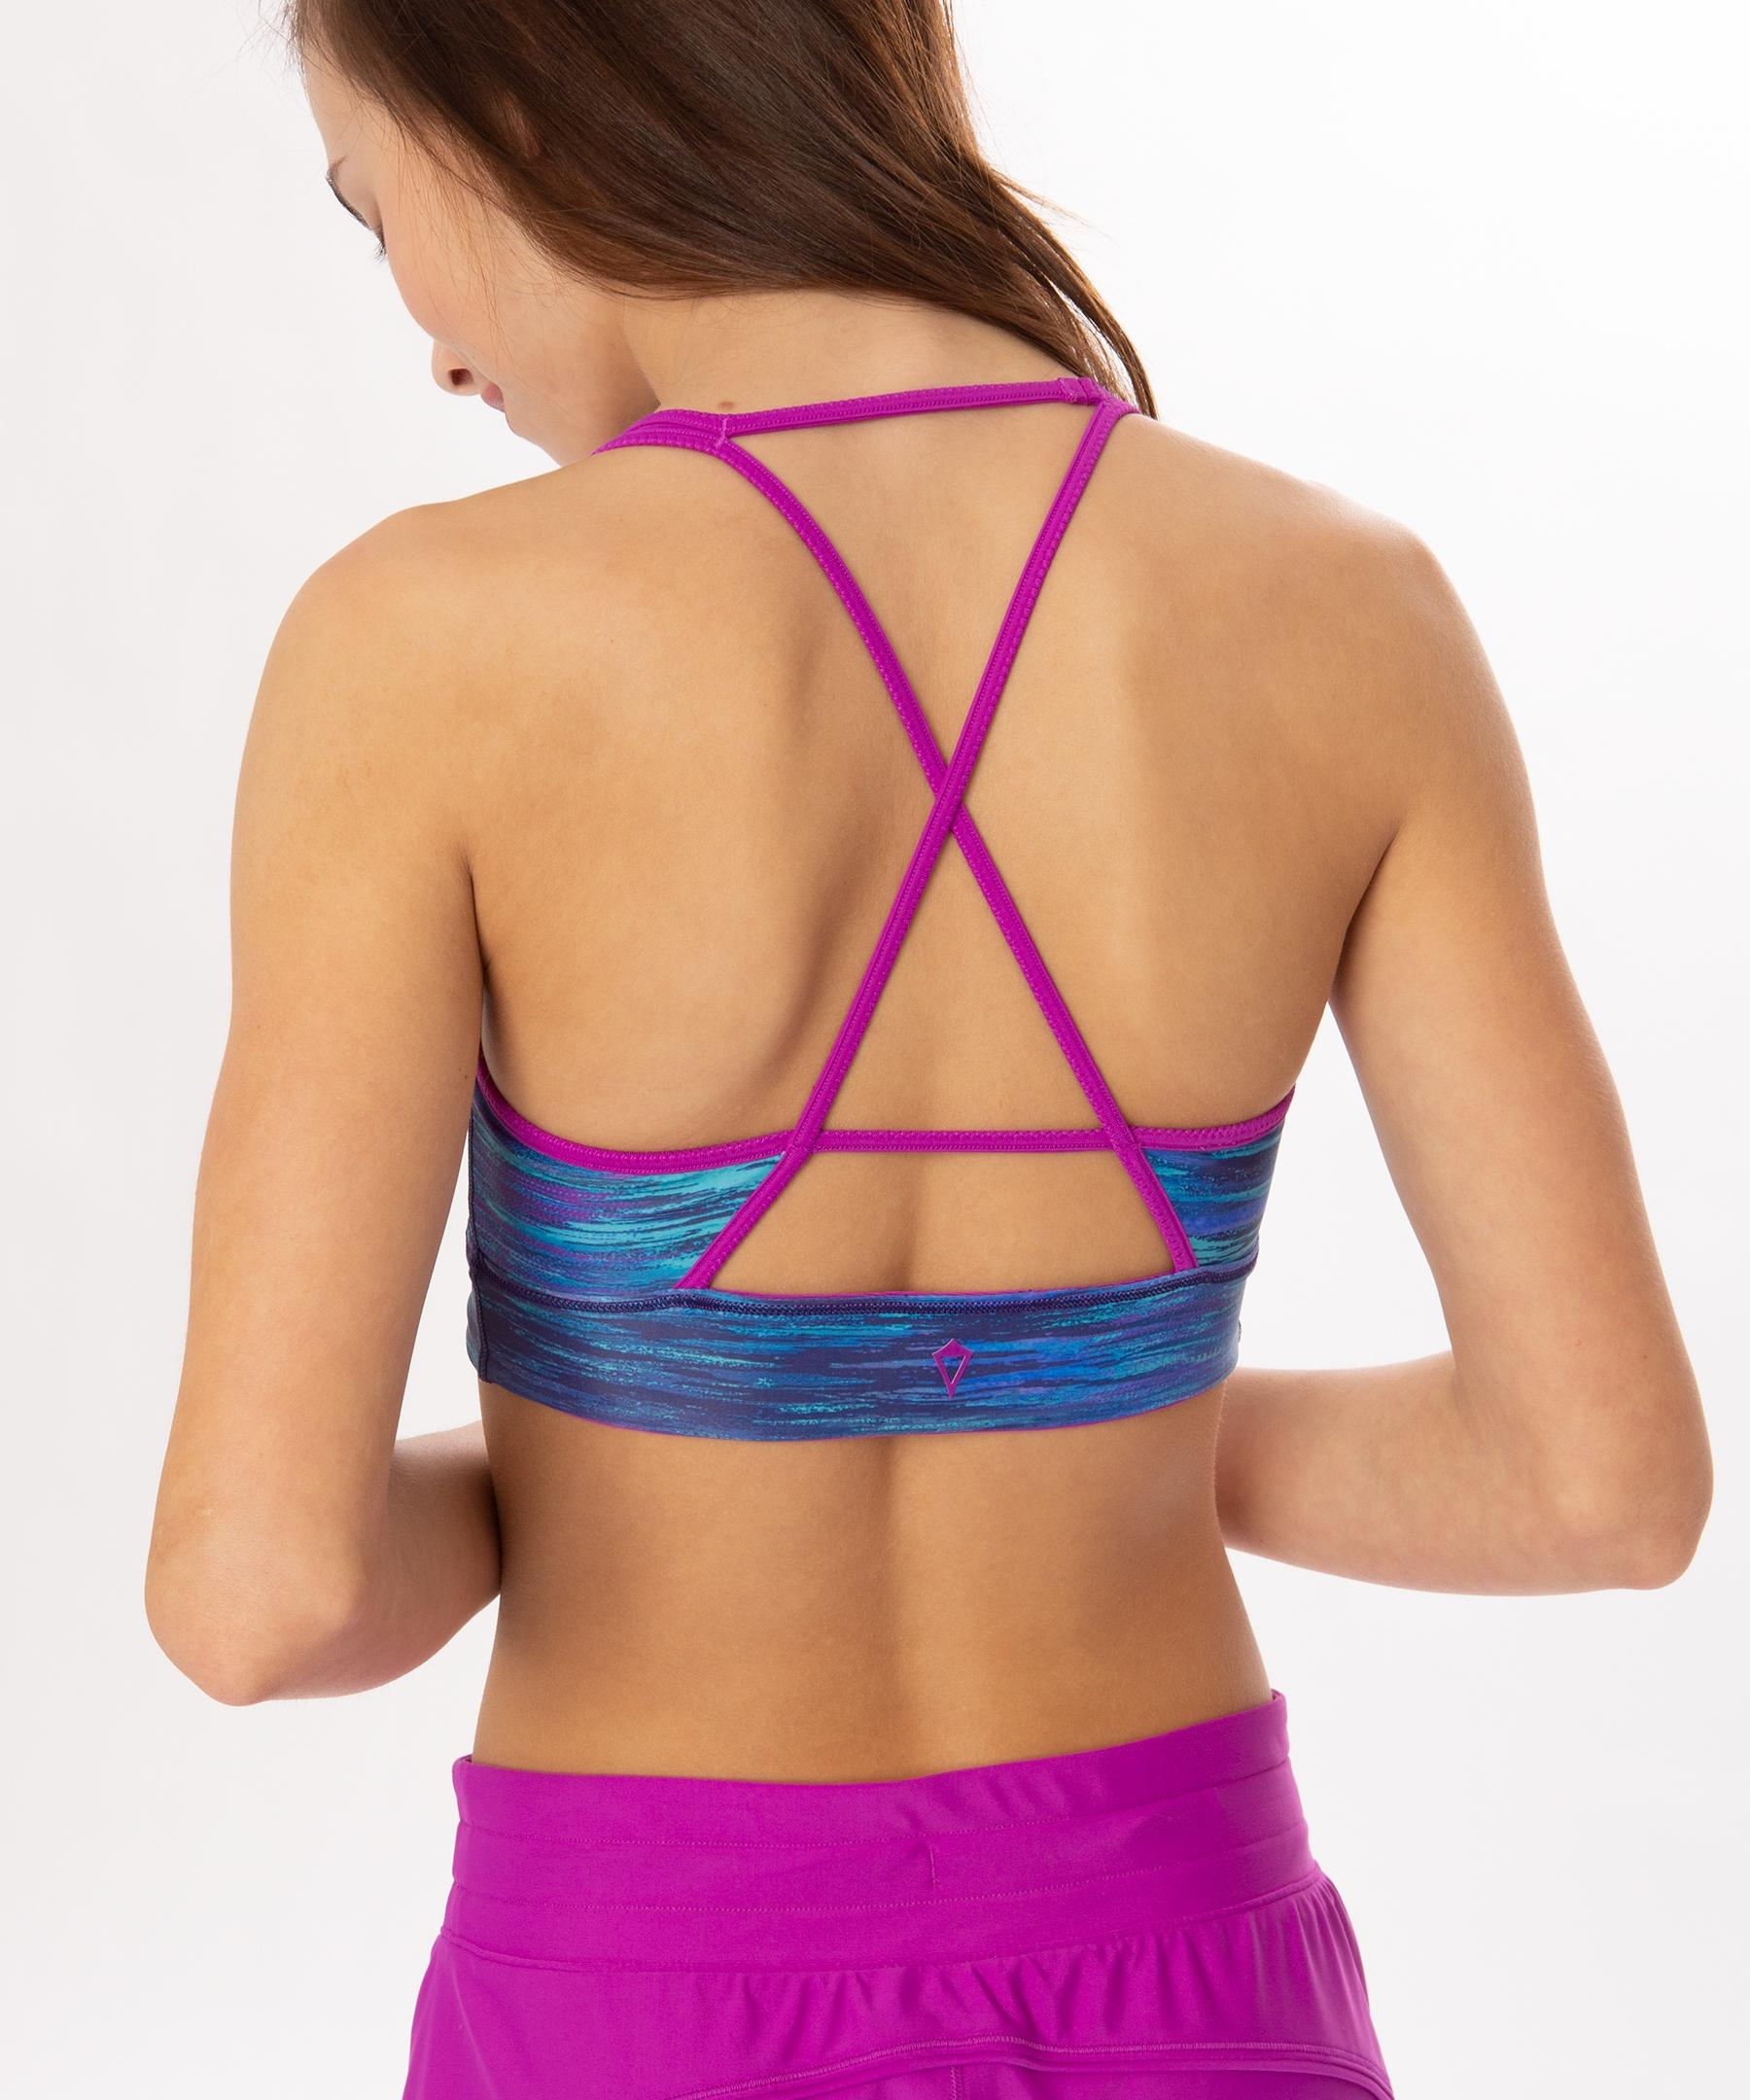 53b795cf58 Lyst - lululemon athletica Water You Up To Crop Top  reversible - Girls